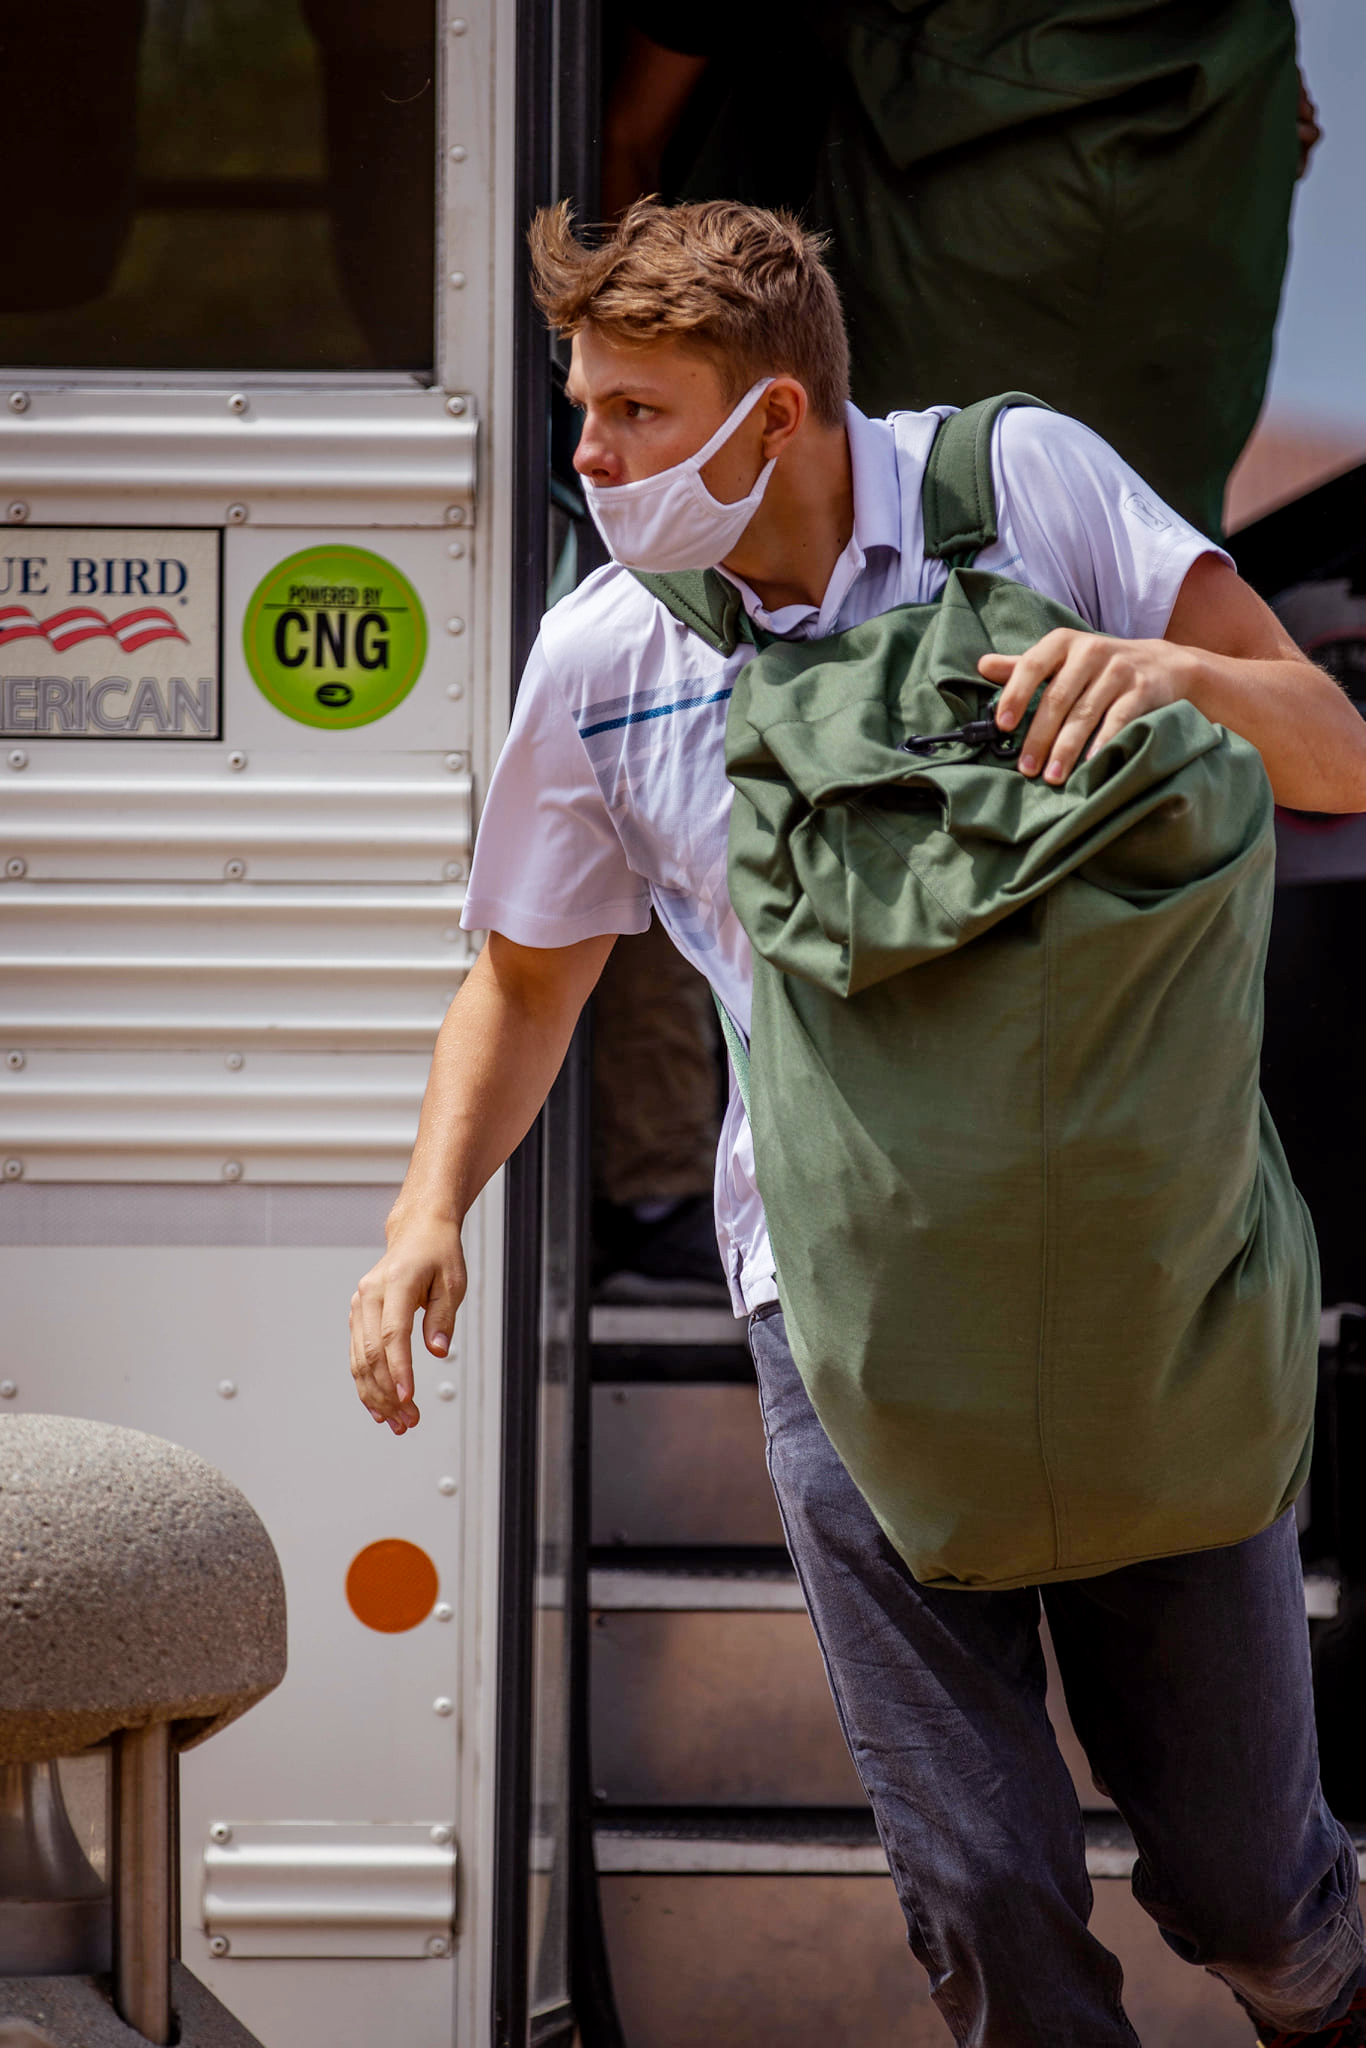 Recruit Lane Raney, a rct. with Delta Company, 1st Recruit Training Battalion, exits the bus during receiving at Marine Corps Recruit Depot, San Diego, June 22, 2021.